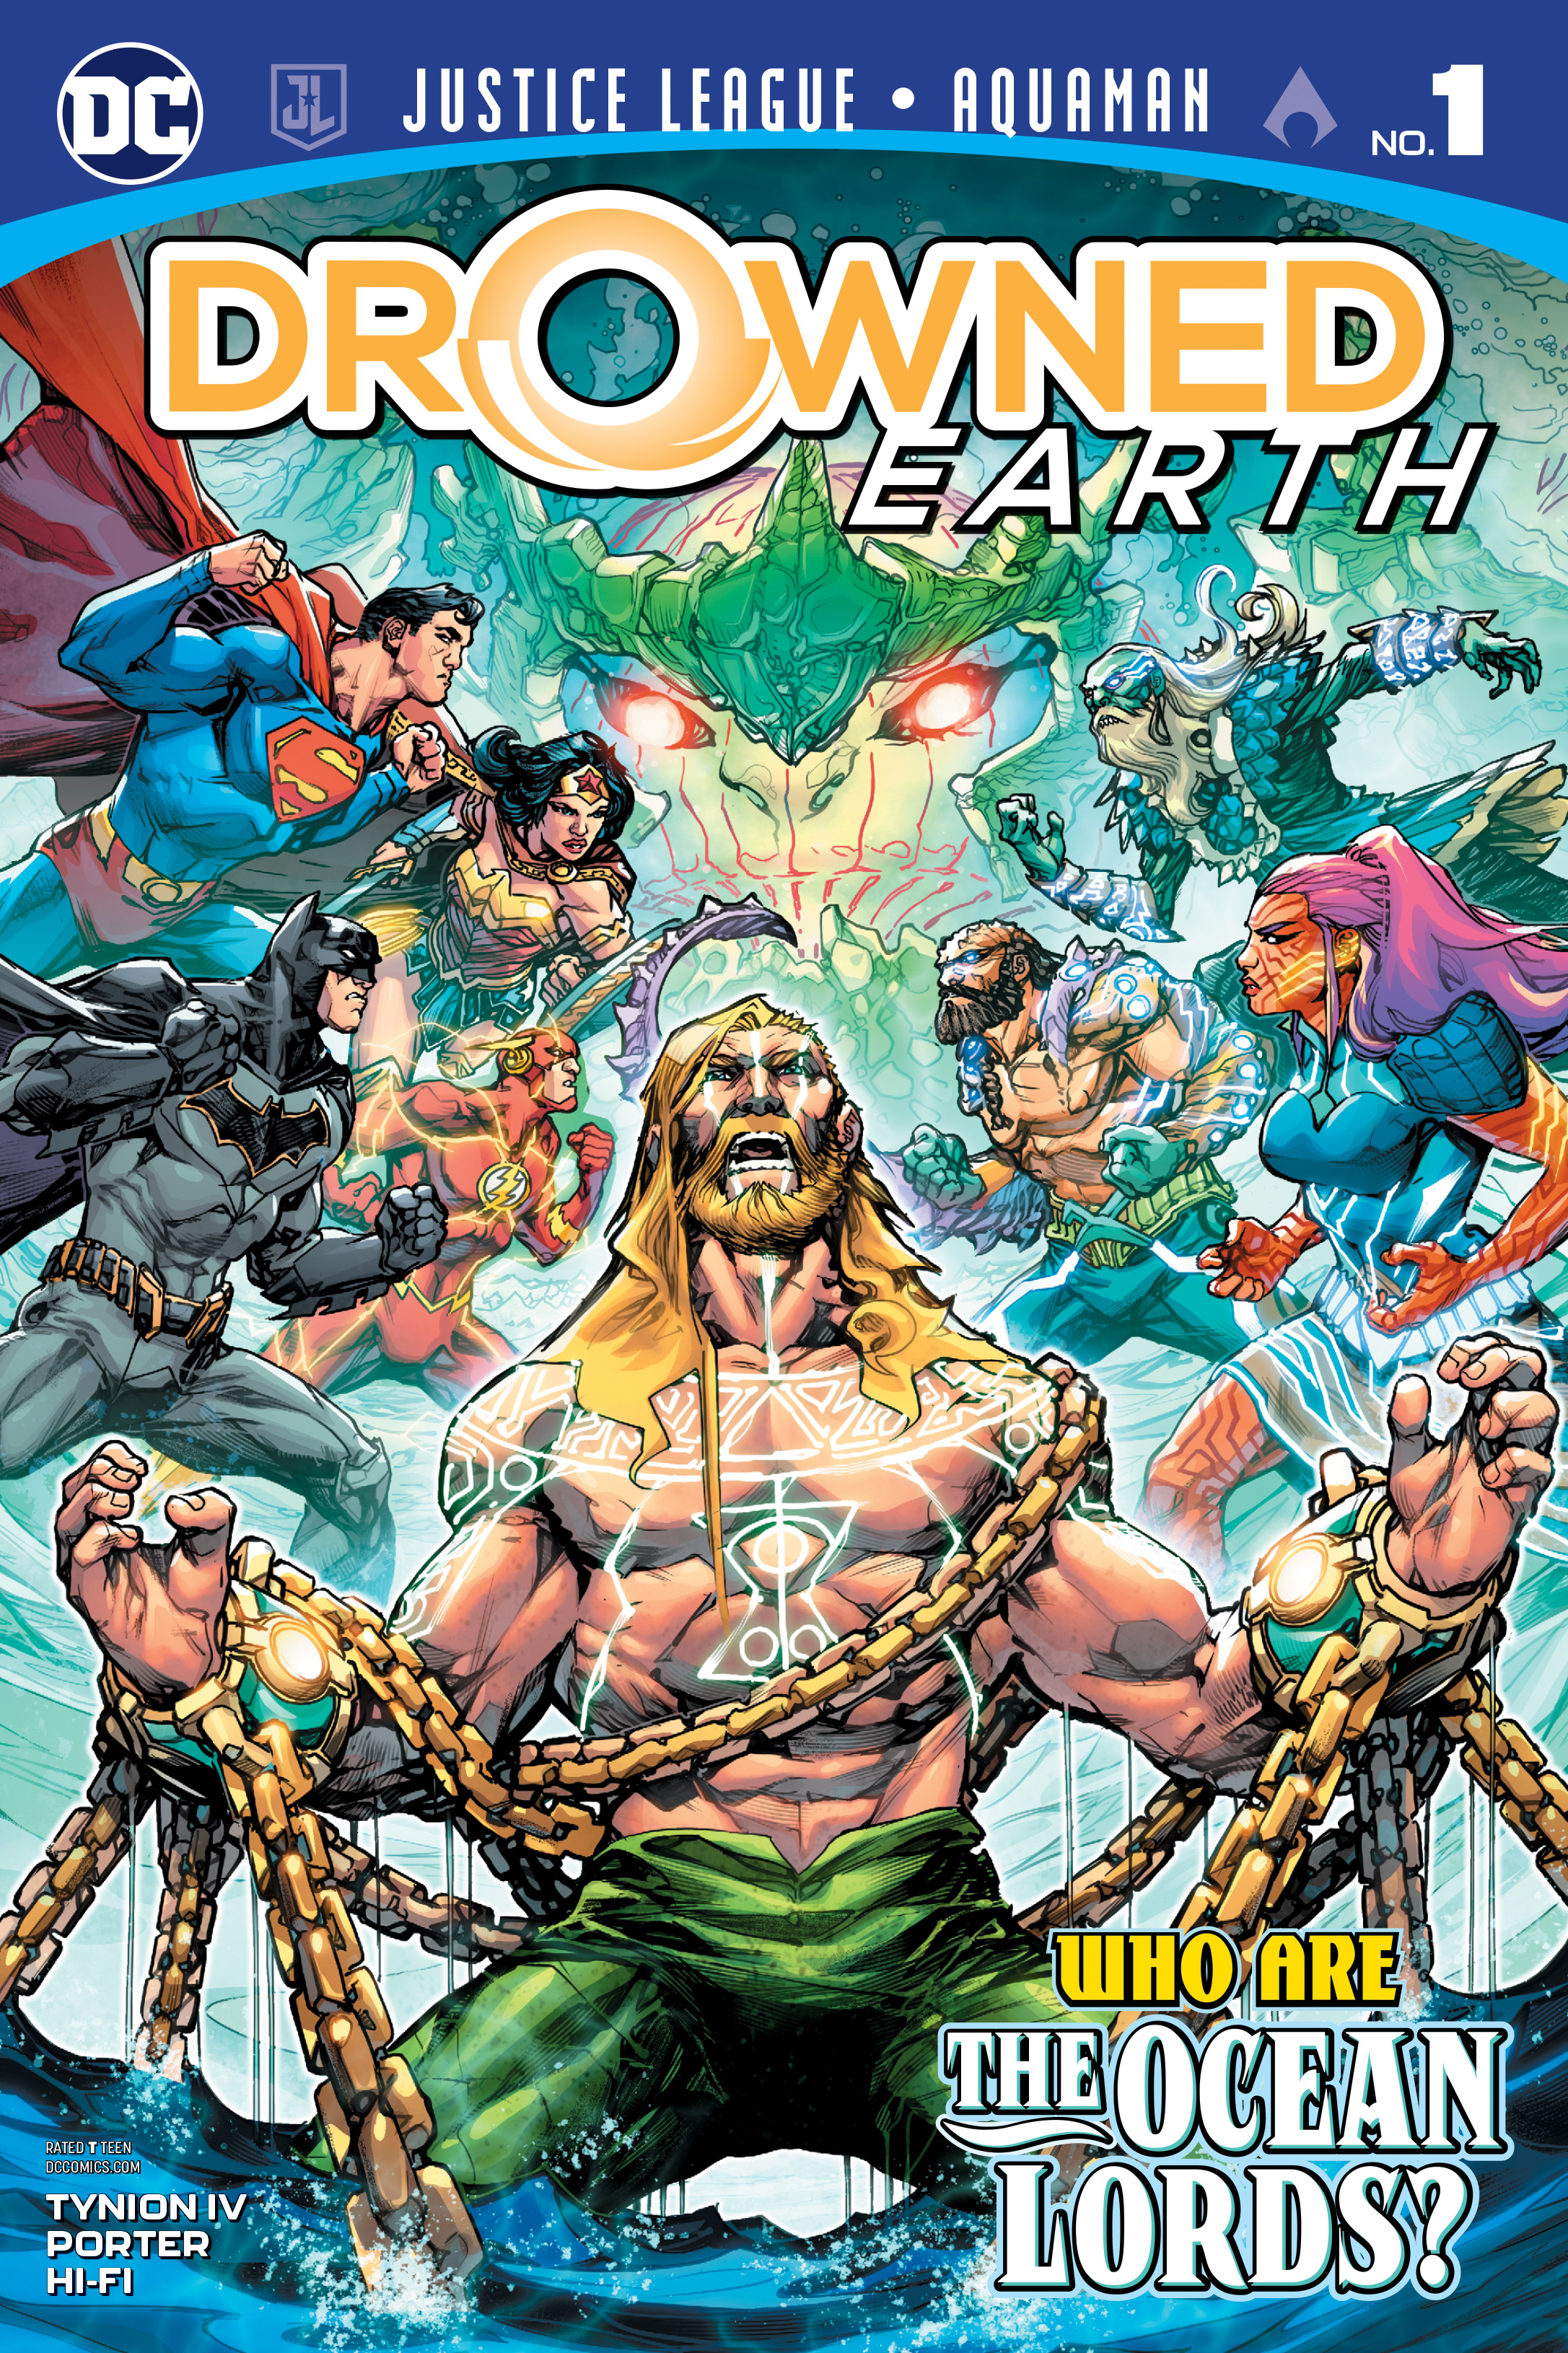 JUSTICE LEAGUE AQUAMAN DROWNED EARTH #1